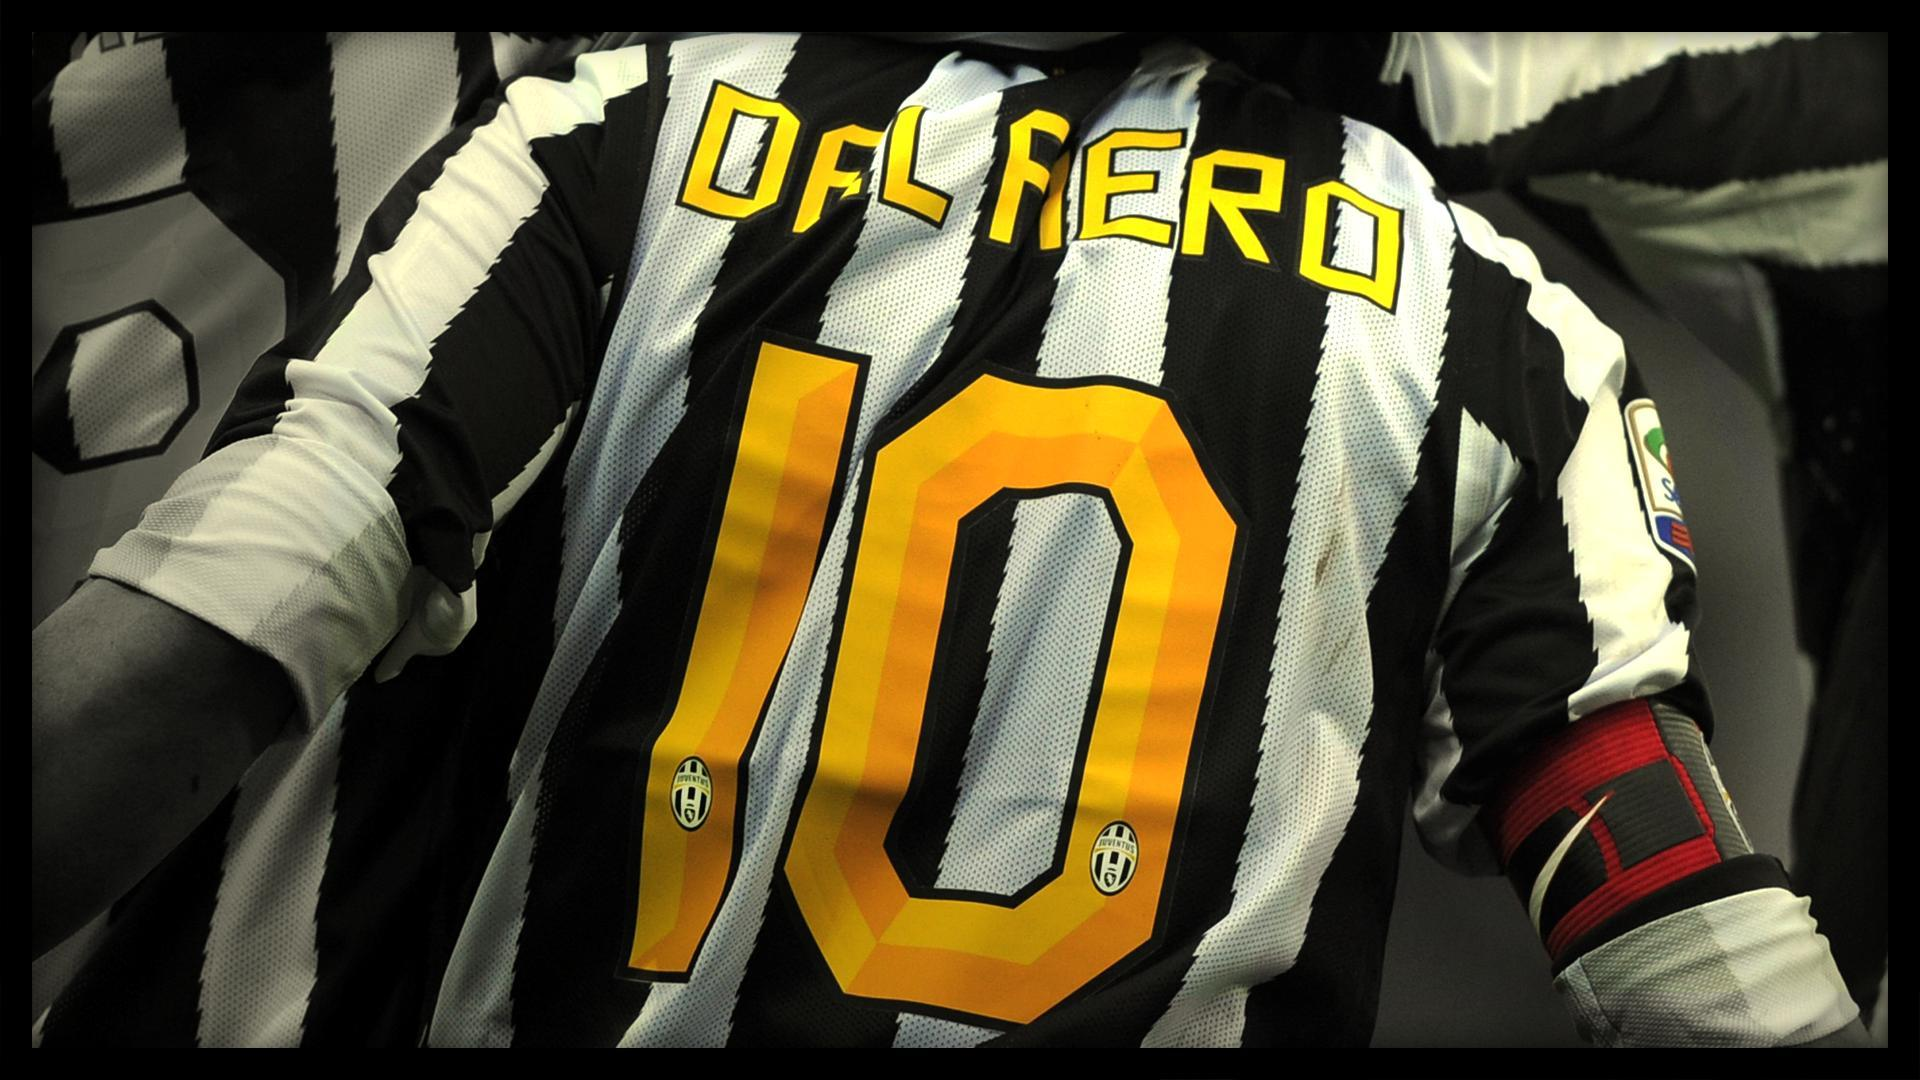 Del piero wallpapers wallpaper cave for Sfondo juventus hd